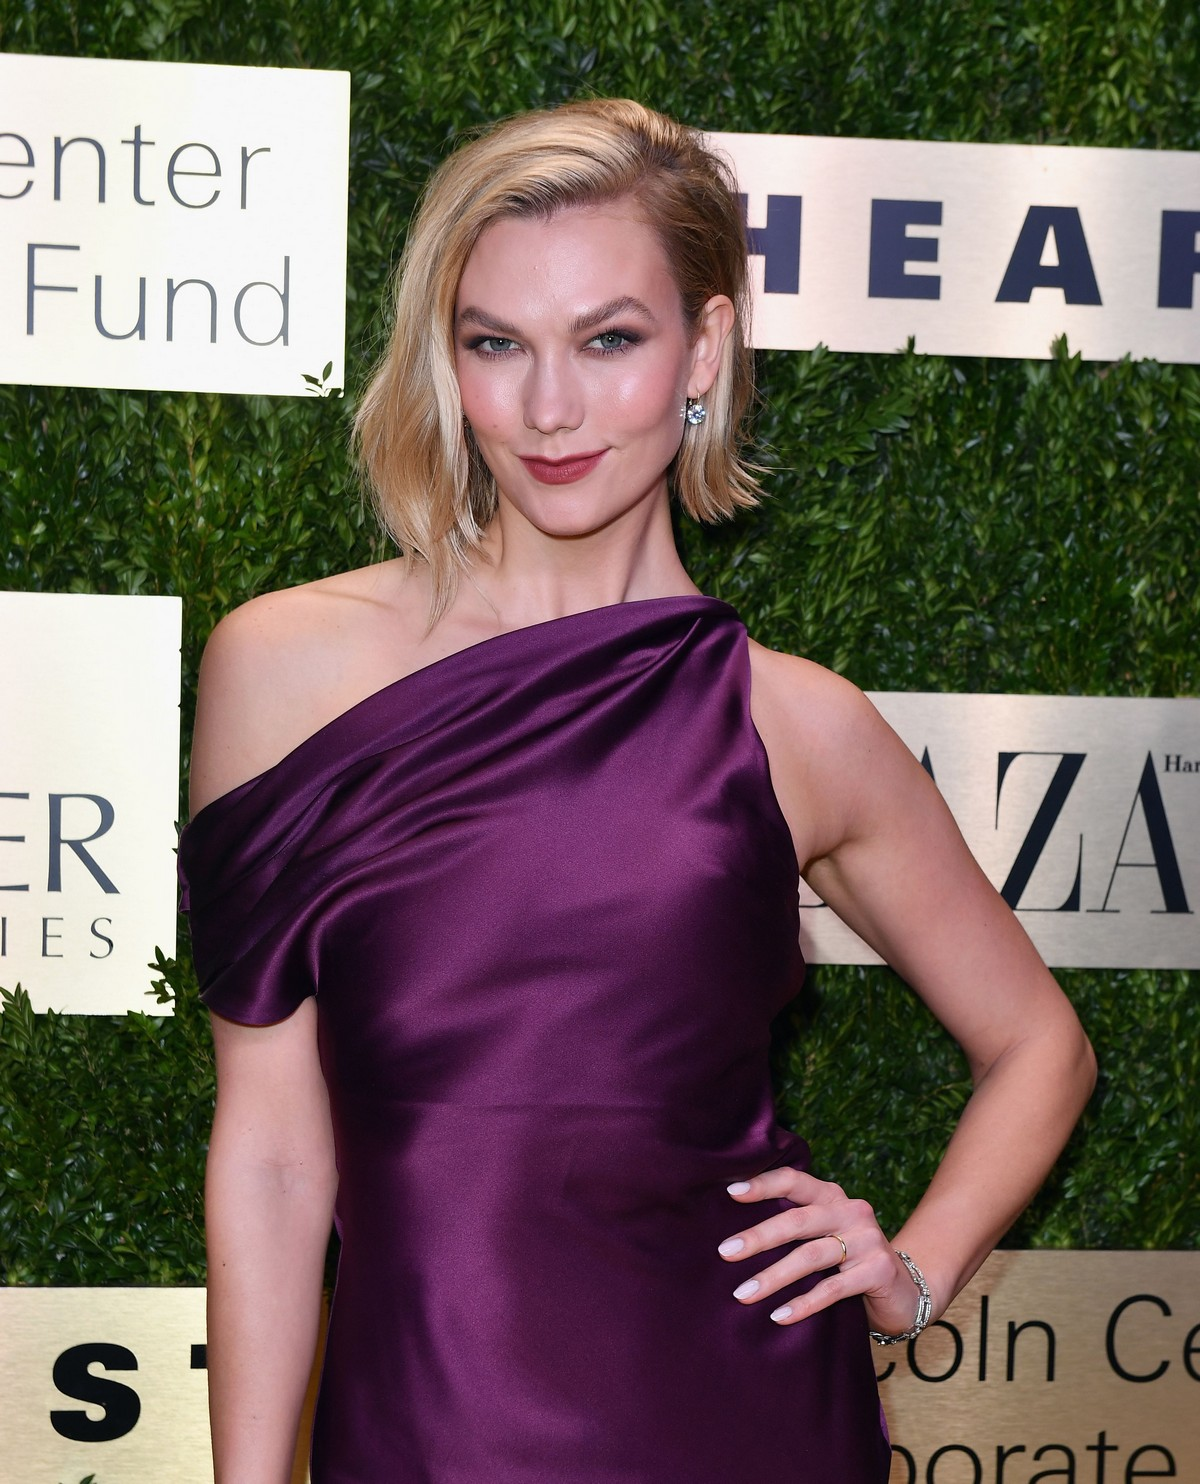 Karlie Kloss attends Lincoln Center Corporate Fashion Fund Gala in New York City 2019/11/18 24